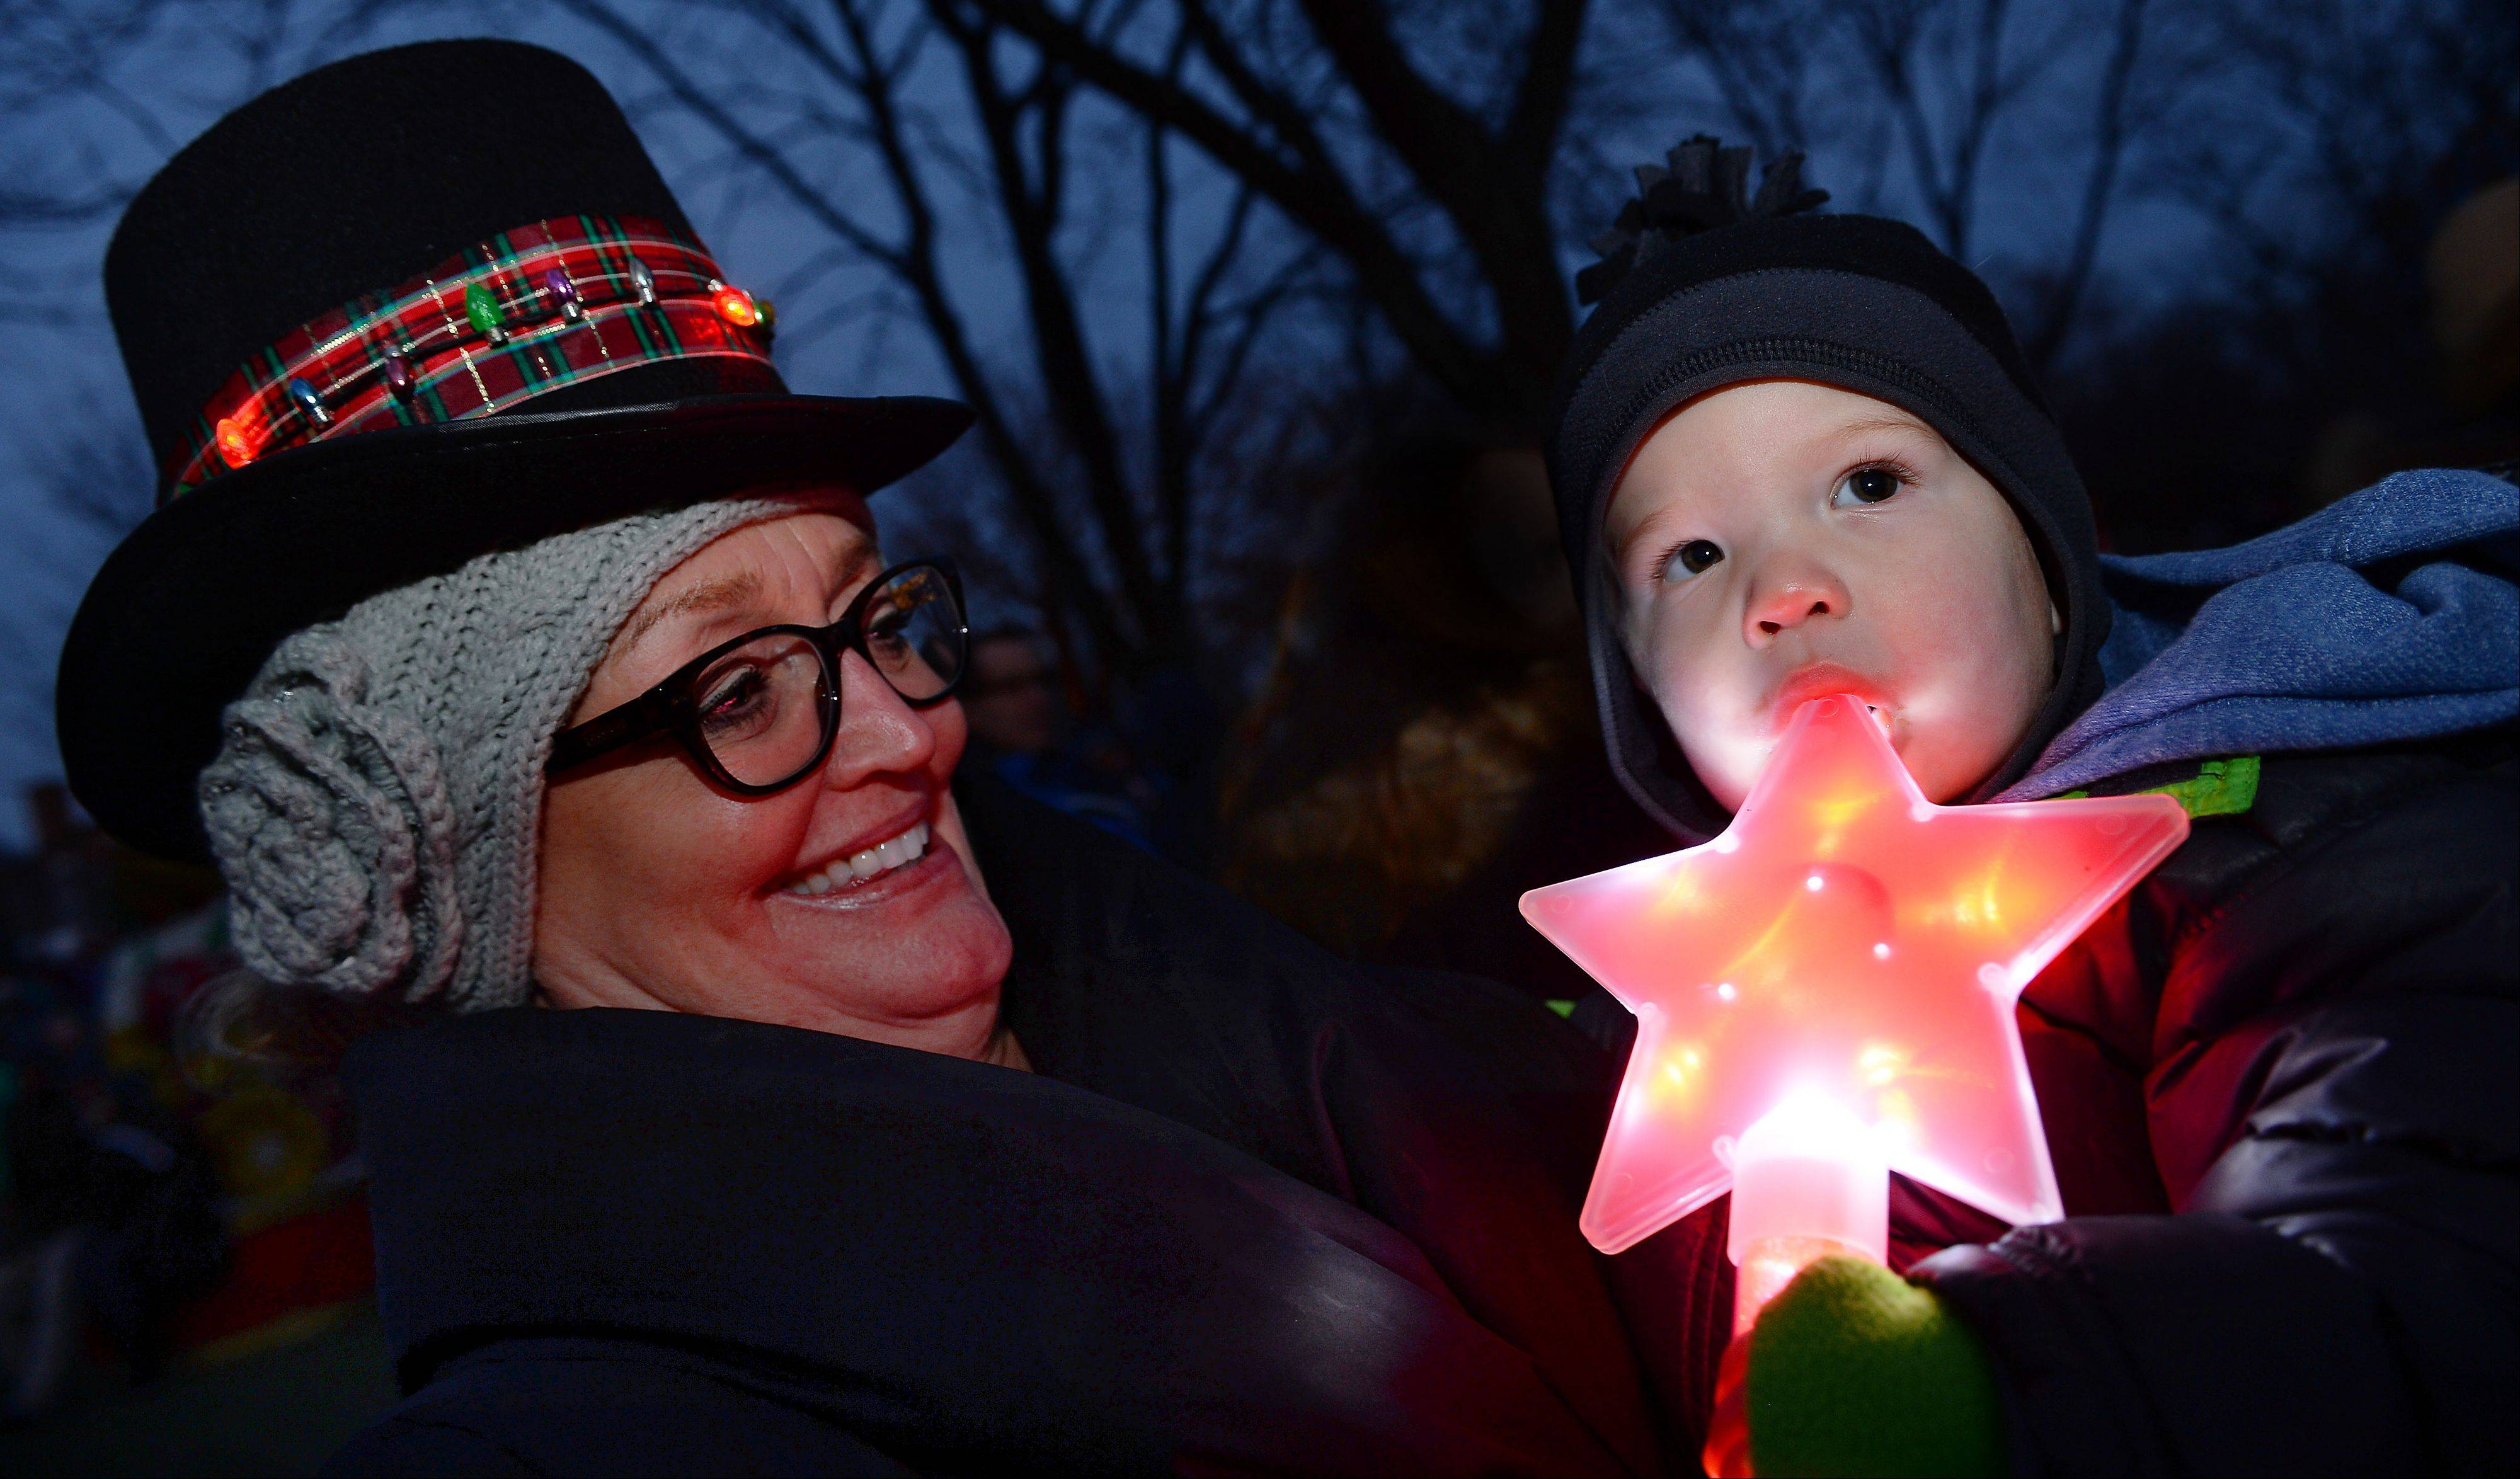 Dani Gresham of Inverness holds grandson Justin Mobley of Palatine as they wait for the lights to shine Friday at the annual tree-lighting ceremony at North School Park in Arlington Heights.